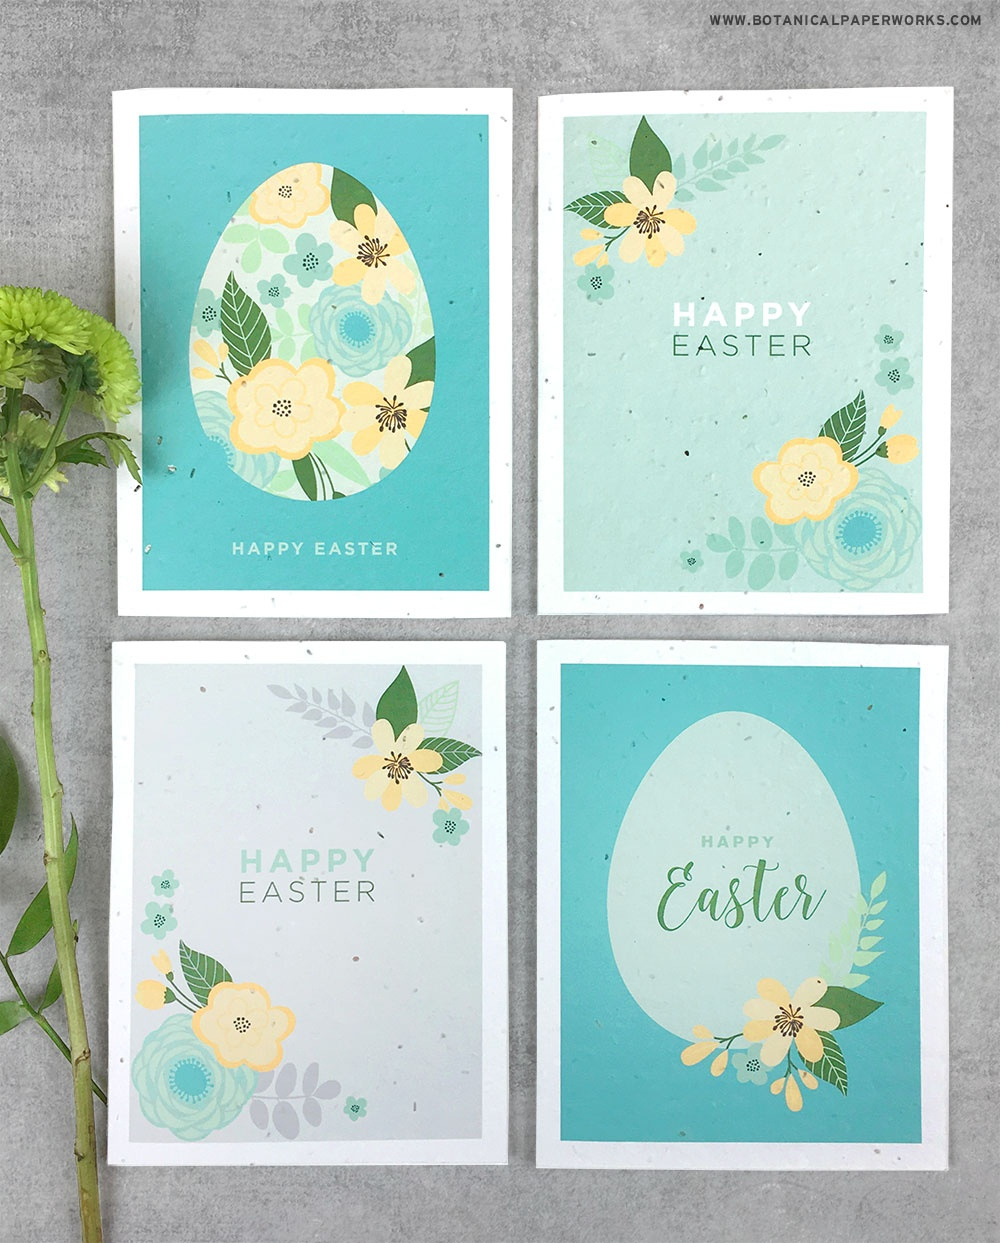 Free Printable} Easter Cards | Blog | Botanical Paperworks - Free Printable Easter Cards To Print